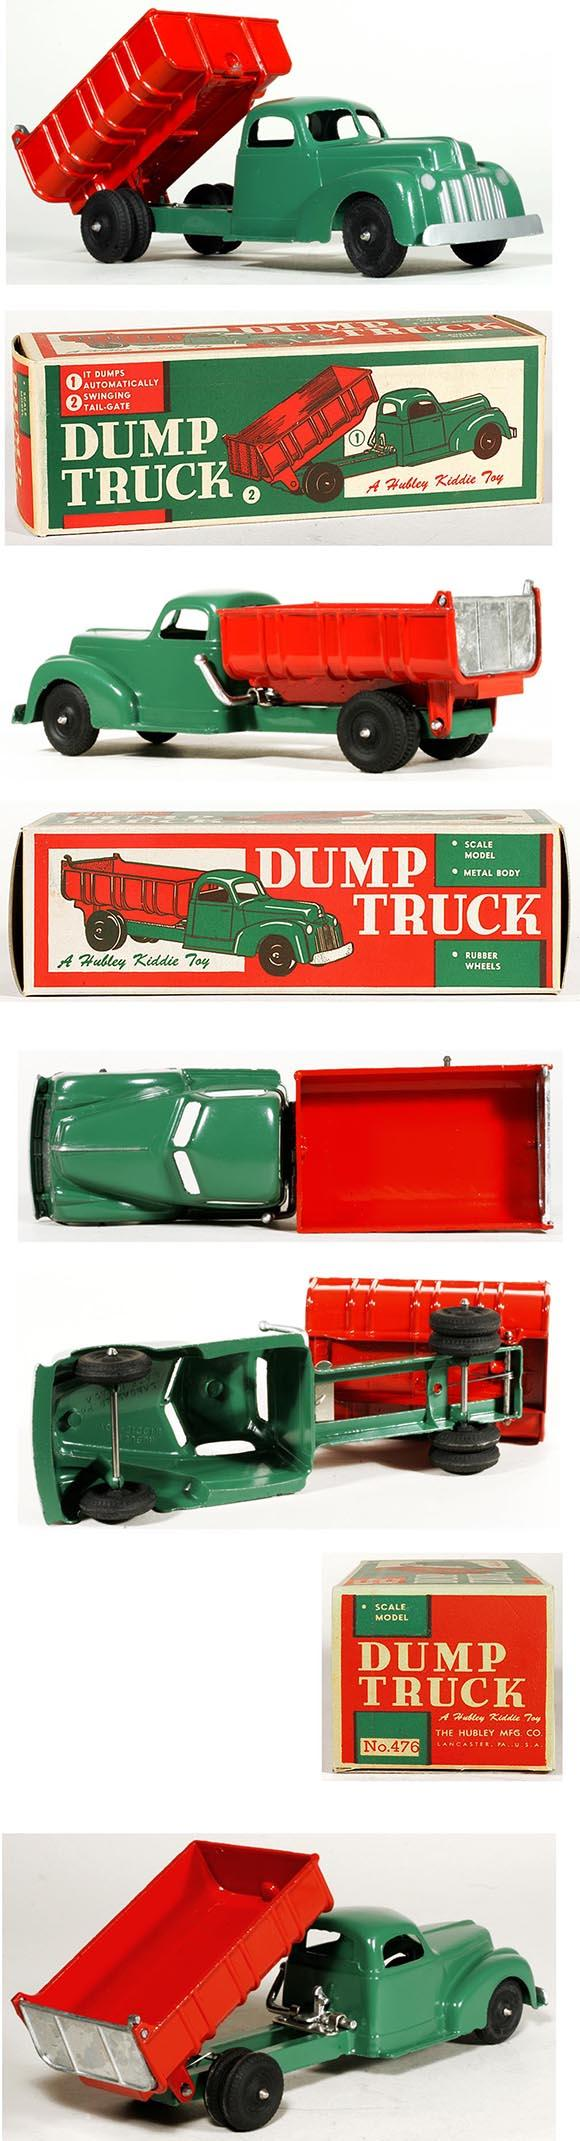 c.1948 Hubley, No.476 Kiddie Dump Truck in Original Box